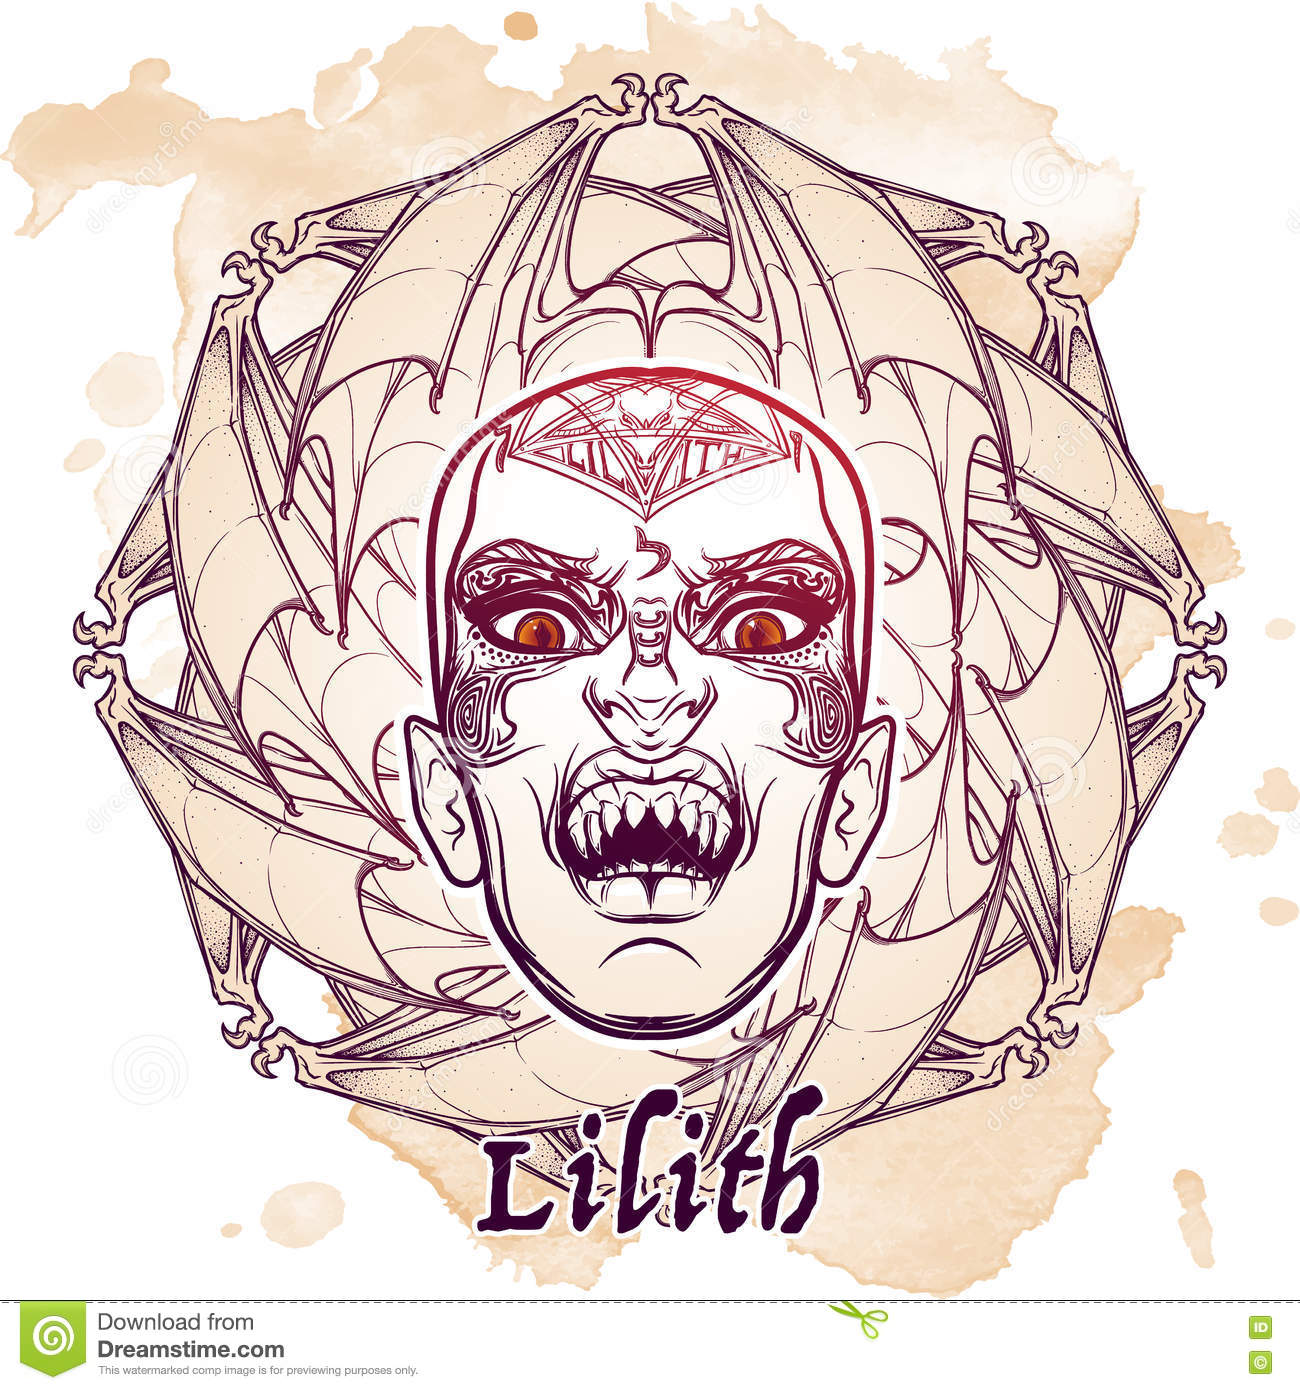 Lilith Sketch On Grunge Background Stock Vector